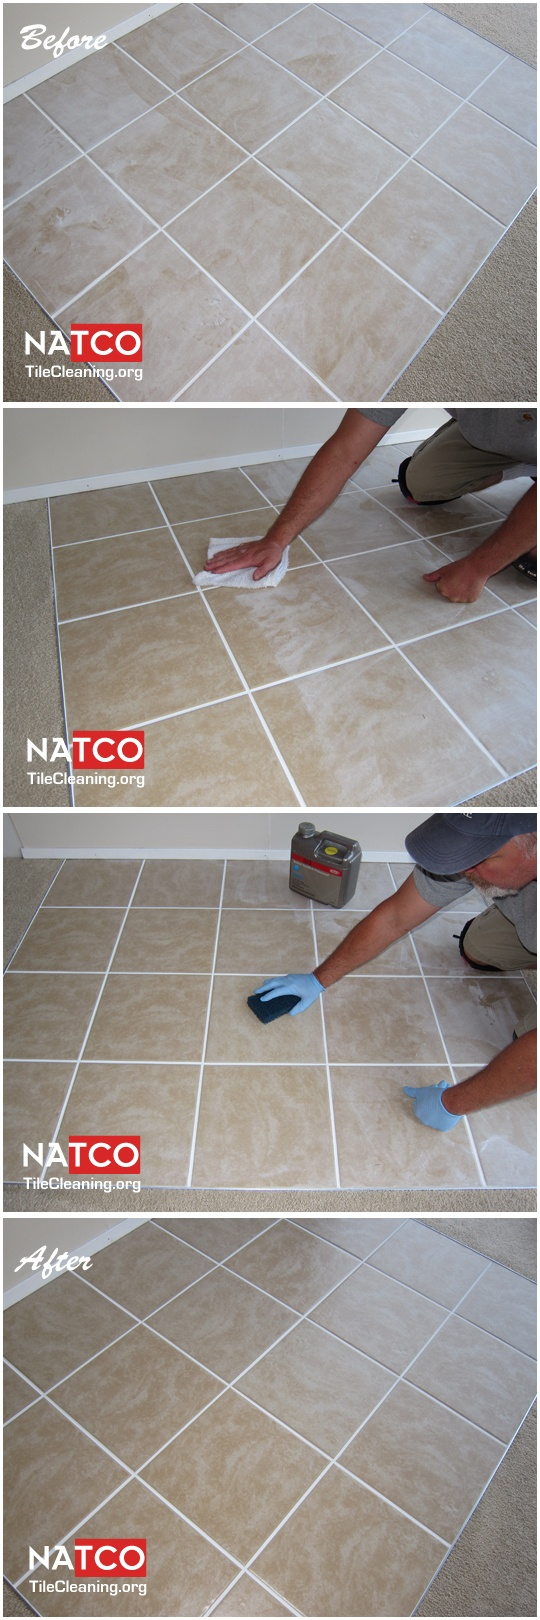 Best 25 how to remove grout ideas on pinterest bathroom caulk steps involved in removing a hardened grout haze dailygadgetfo Images